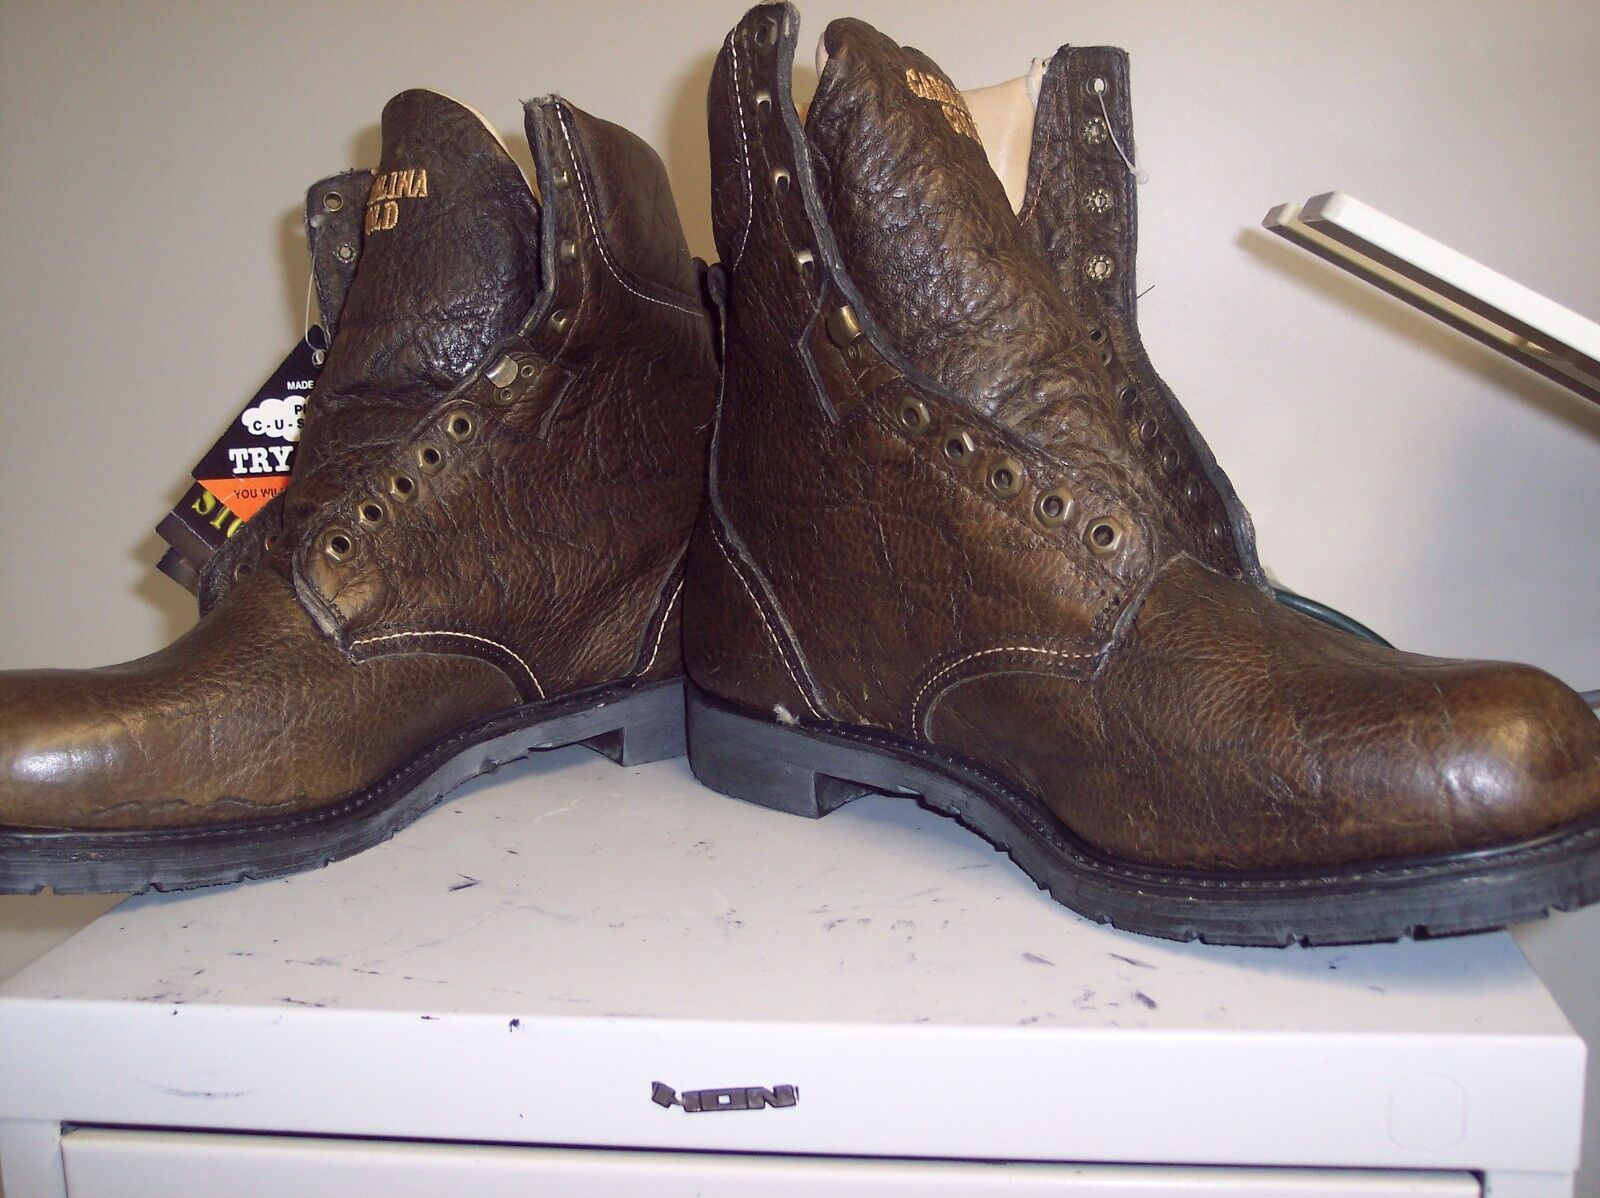 CAROLINA gold STYLE 6076 SIZE 13EE GREAT PAIR OF BOOTS GET YOUR NOW ON SALE NOW